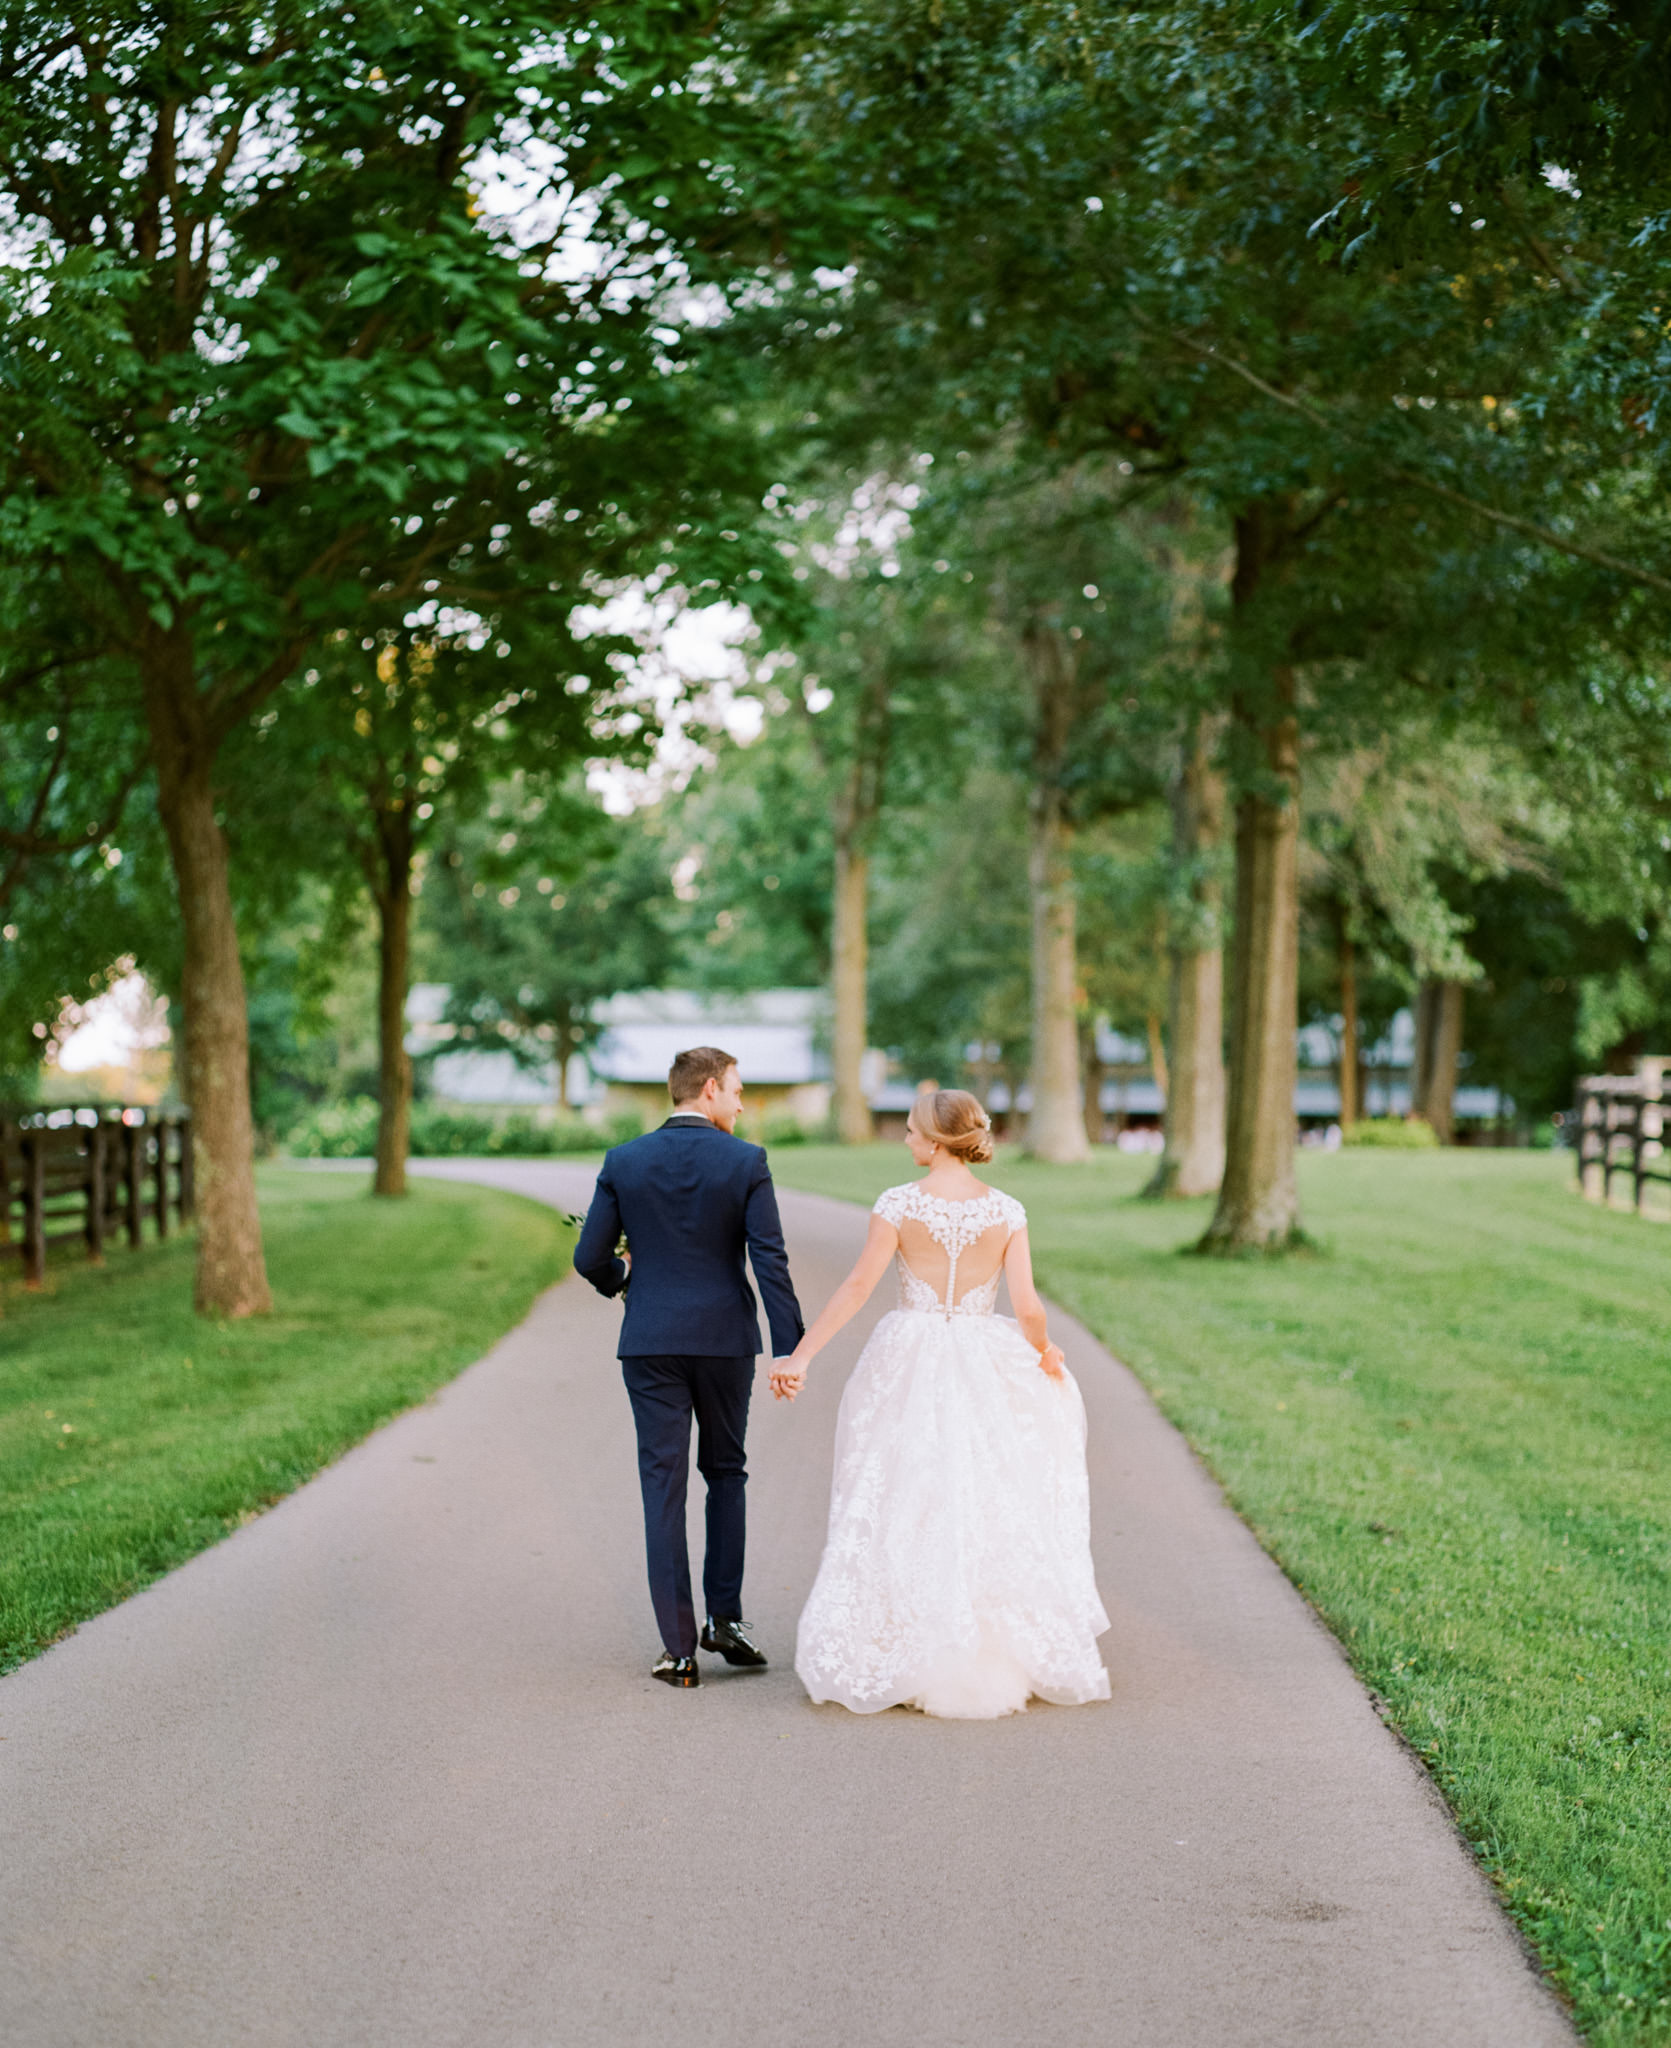 Jom & Emily Polo Barn Lexington, Ky Wedding-30.jpg